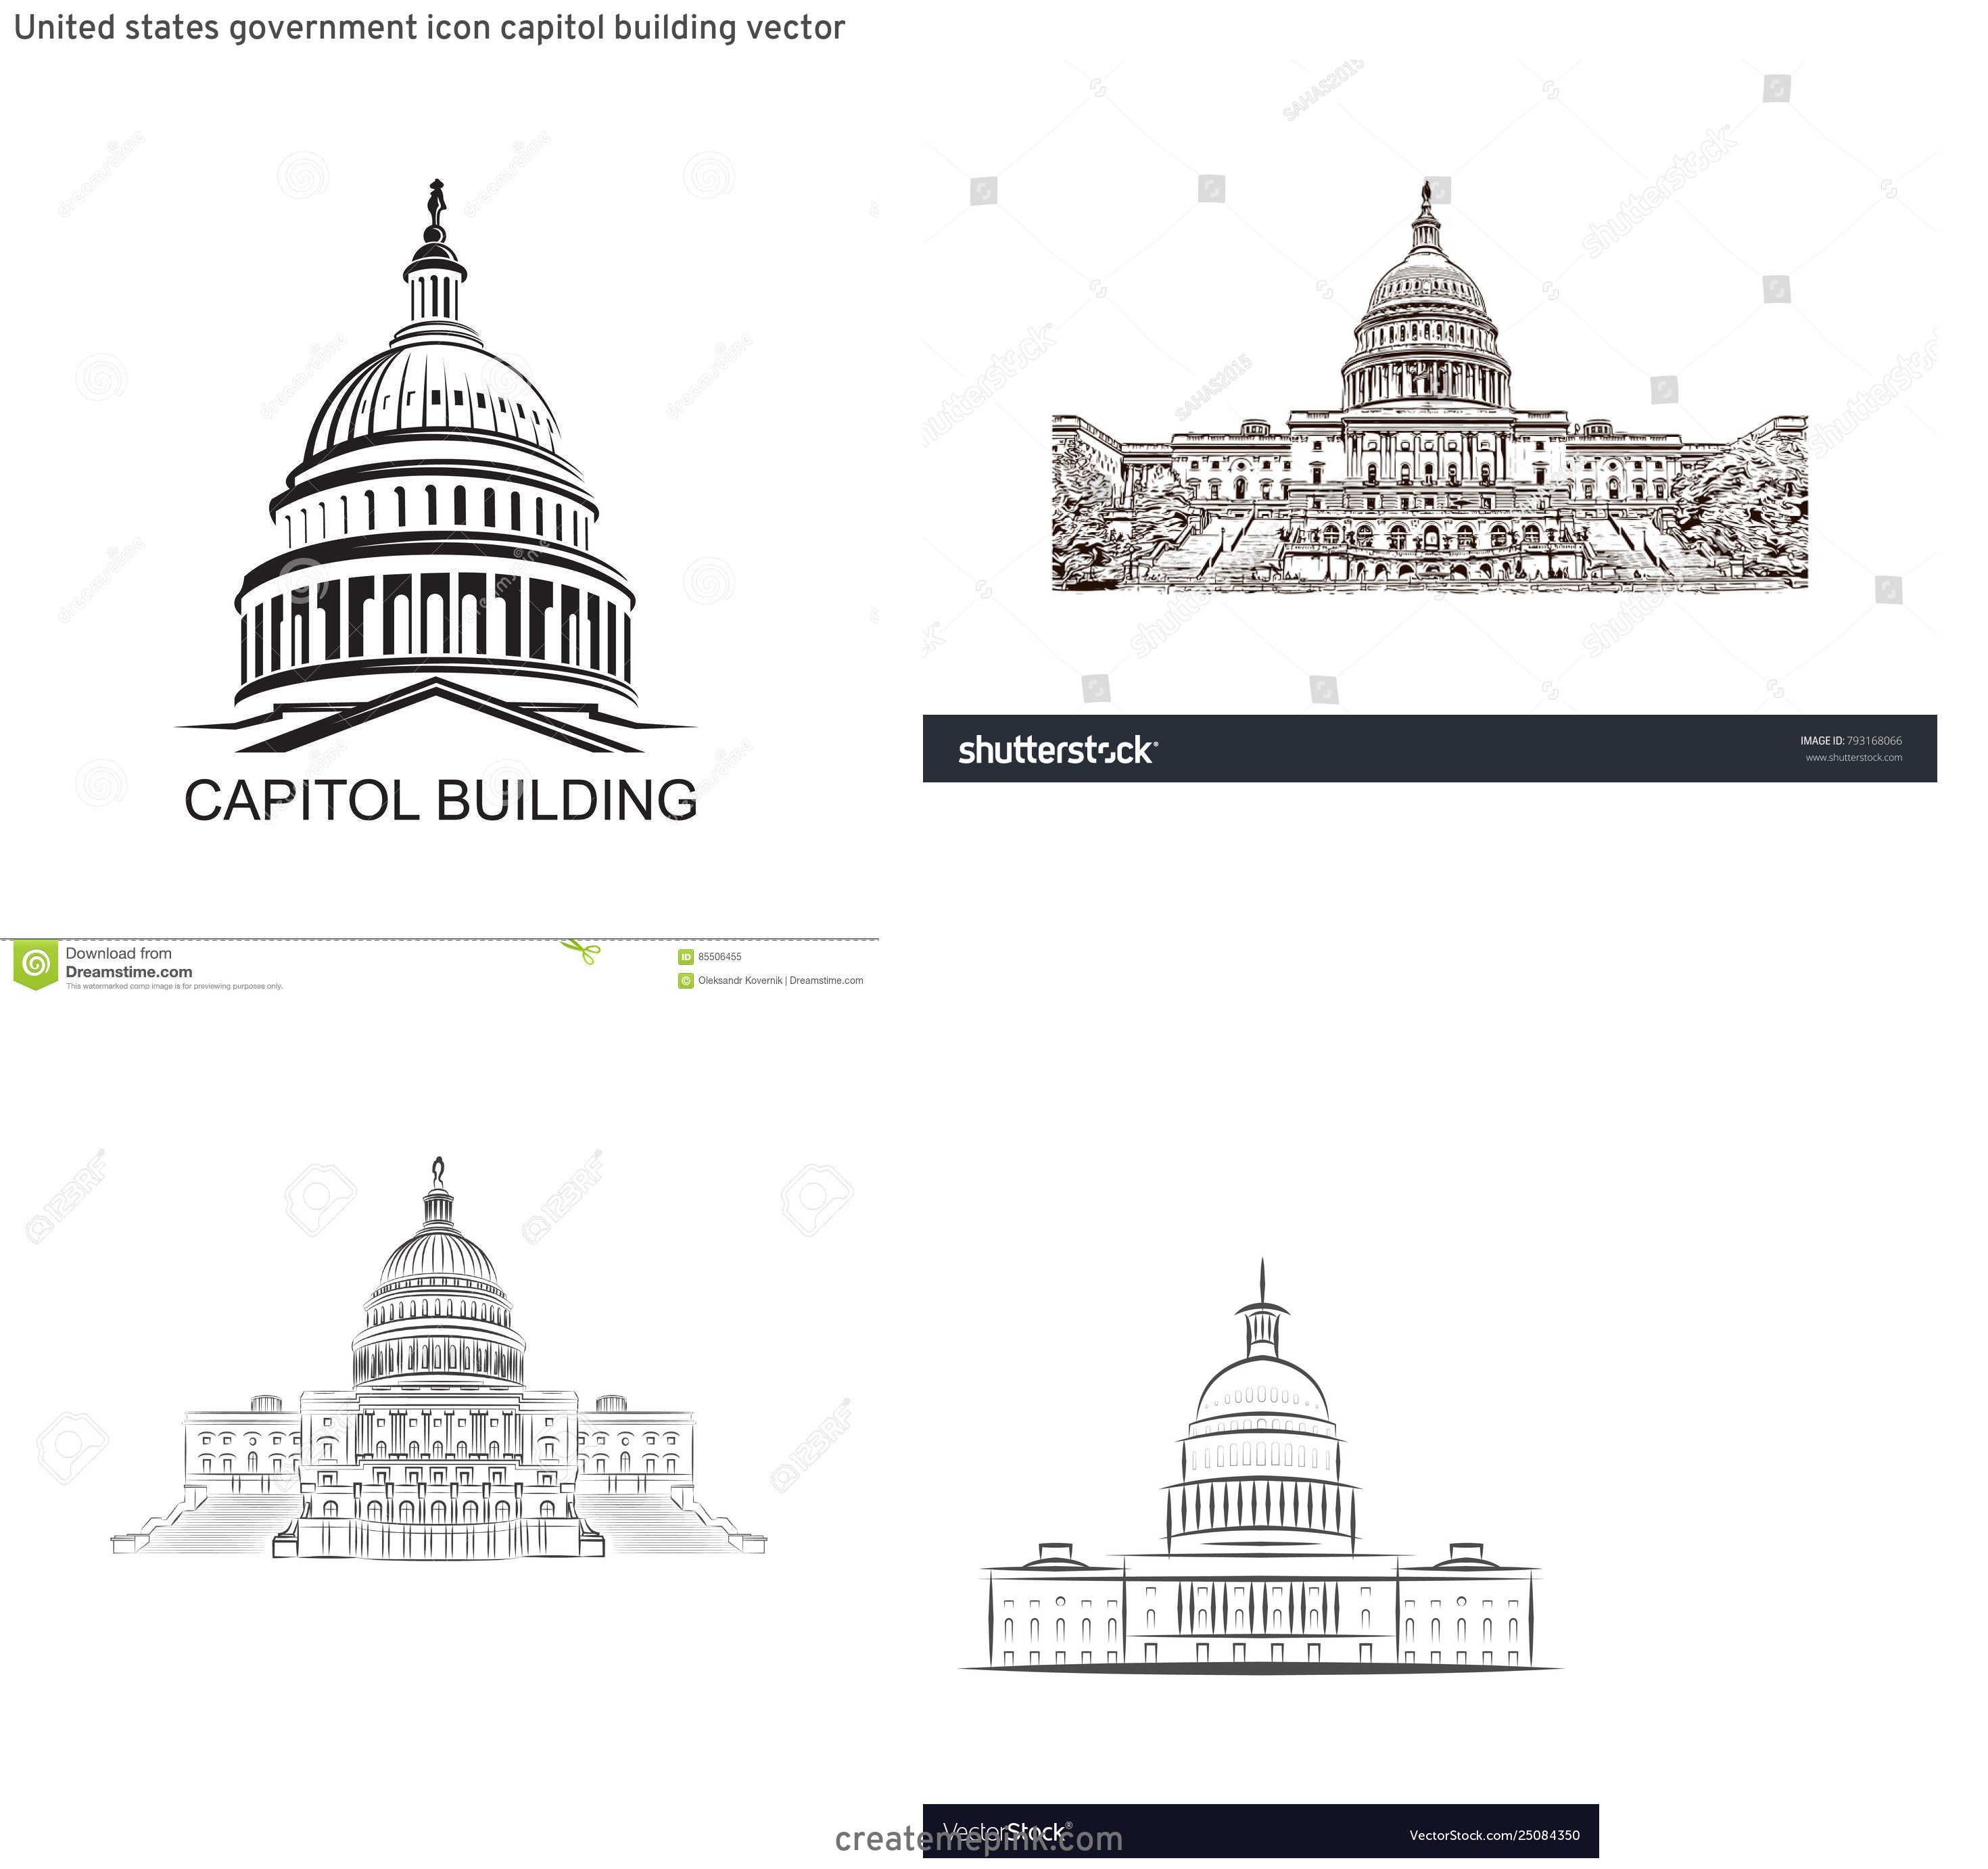 US Capital Vector Line Drawing: United States Government Icon Capitol Building Vector